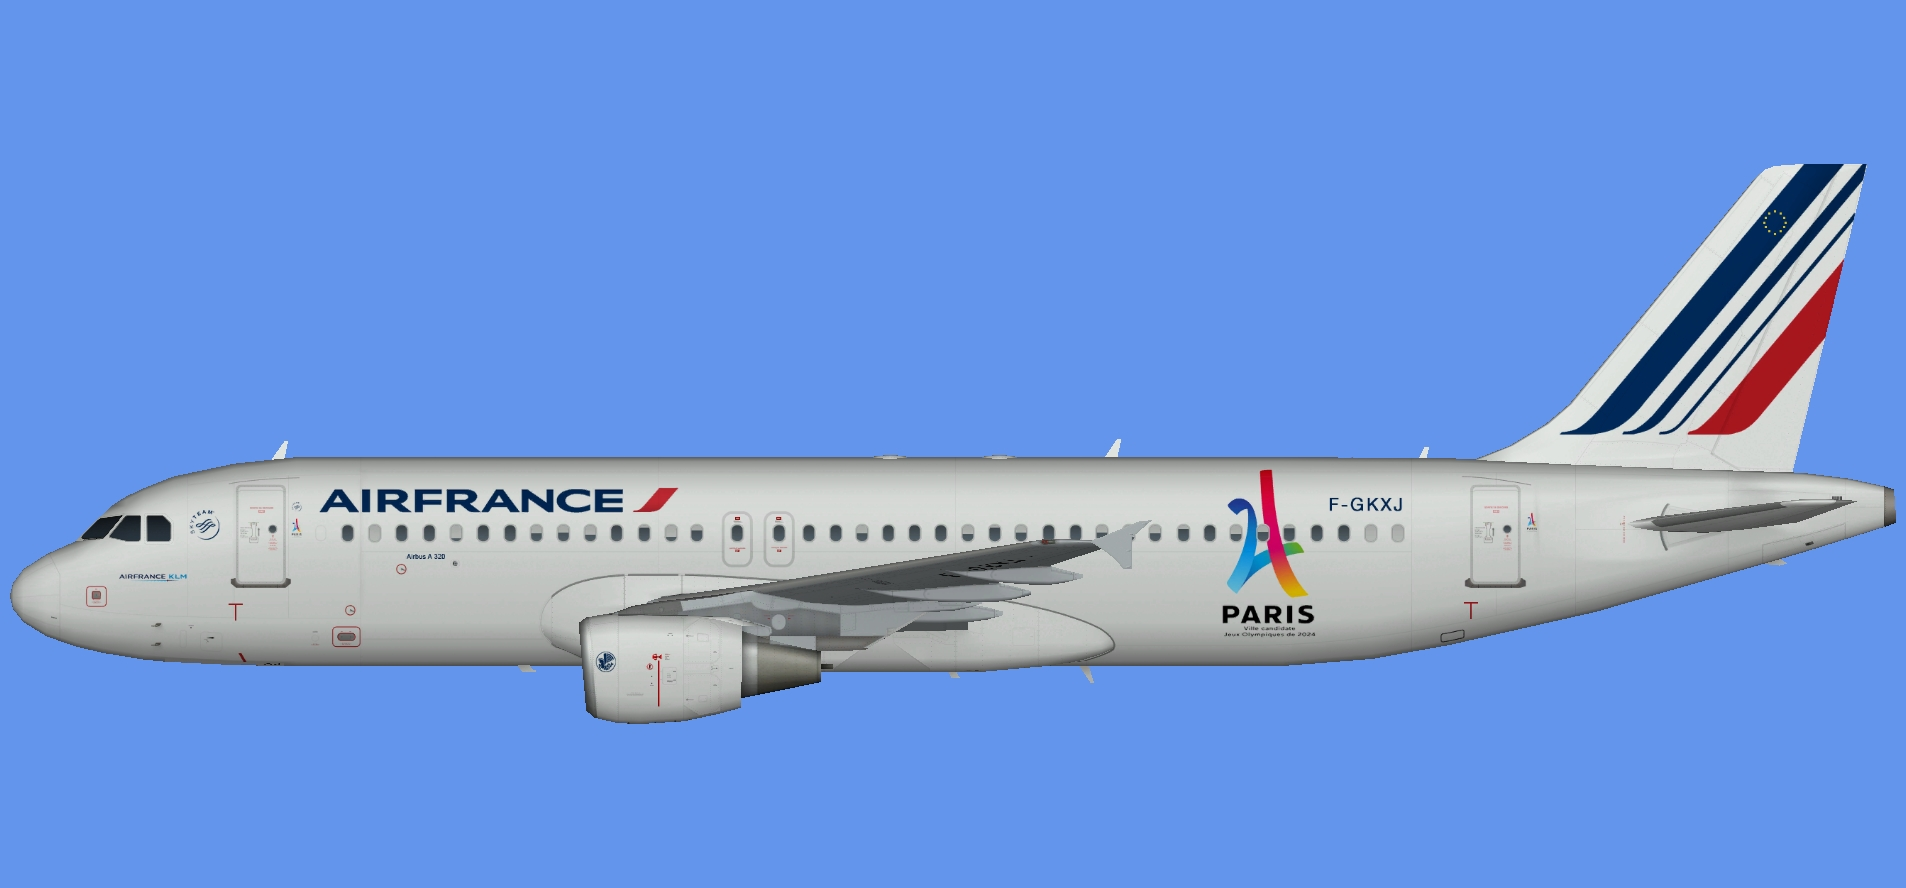 Air France Airbus A320 Paris 2024